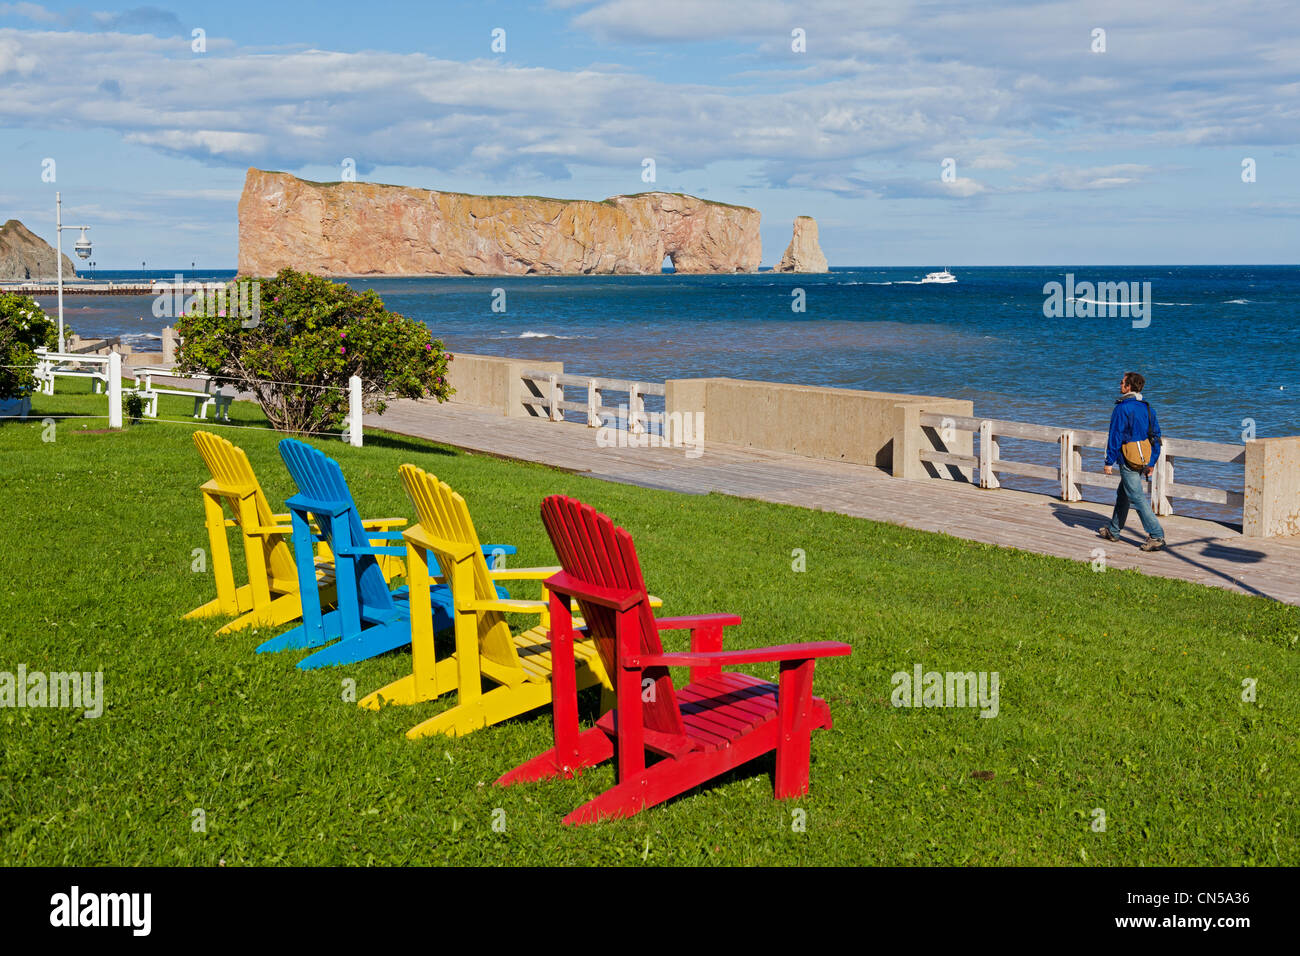 Canada, Quebec Province, Gaspe Peninsula, Perce and its famous Rocher Perce (Perce Rock), Adirondack style chairs - Stock Image